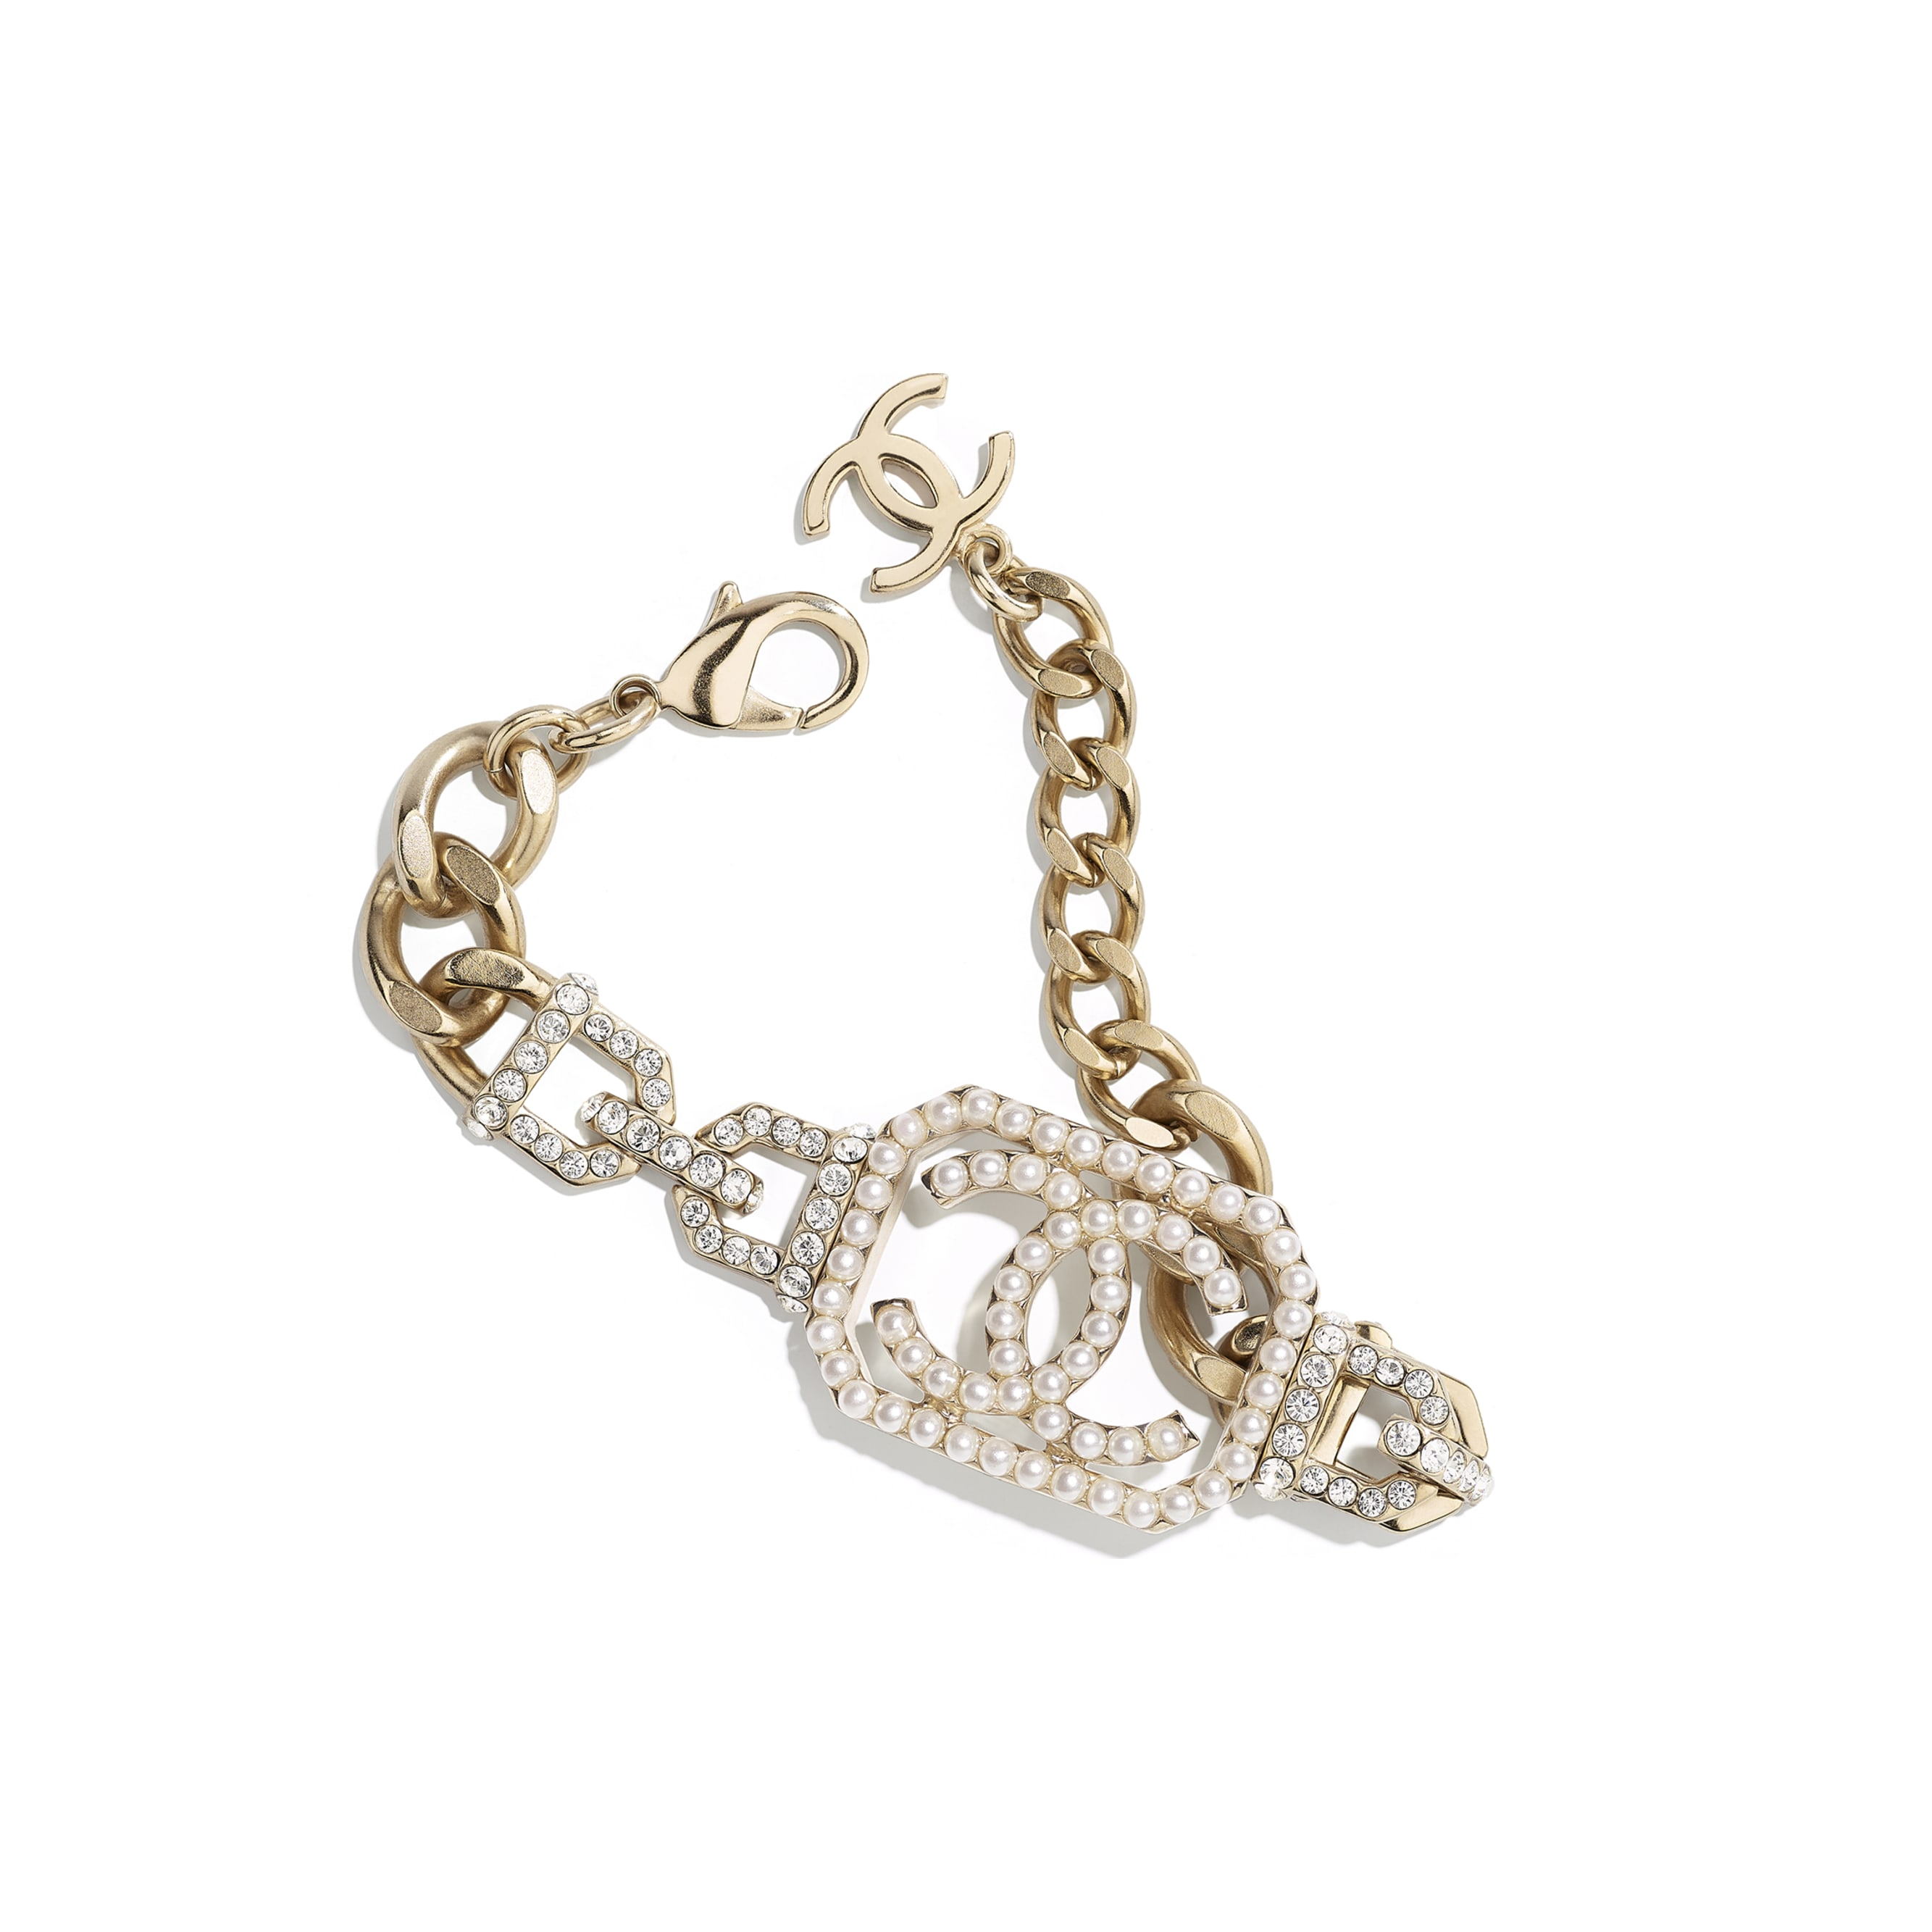 Bracelet - Gold, Pearly White & Crystal - Metal, Imitation Pearls & Diamanté - CHANEL - Default view - see standard sized version